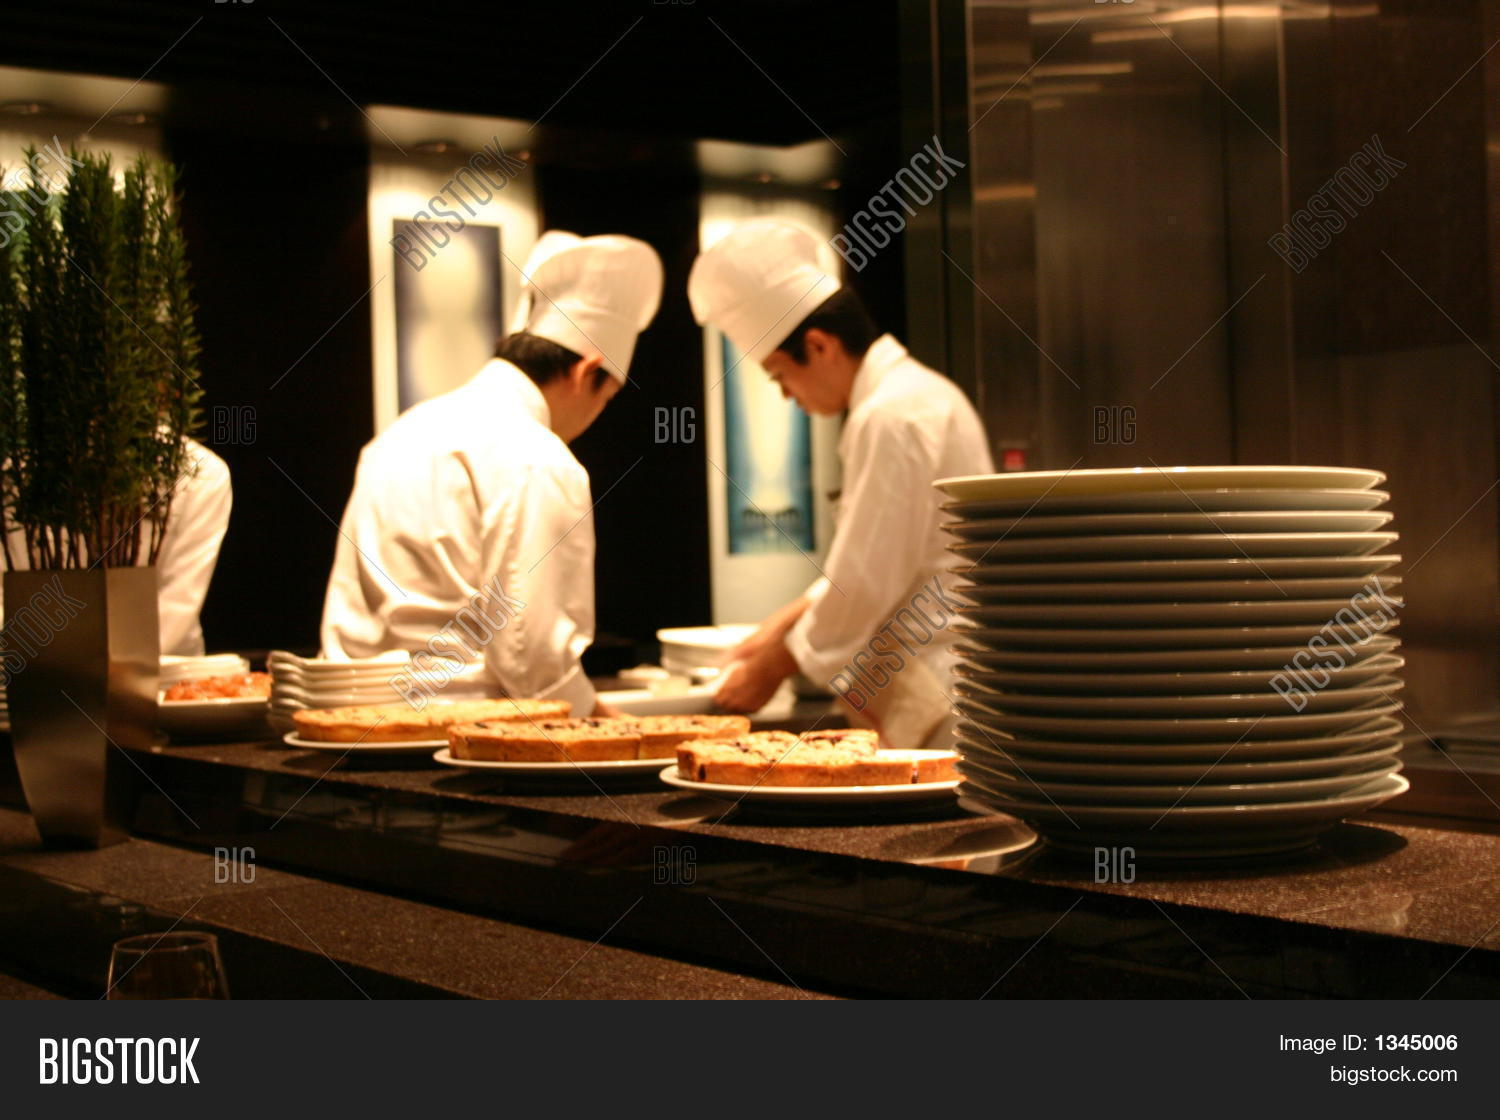 Busy Restaurant Kitchen Two Chefs Working In A Busy Restaurant Kitchen Stock Photo & Stock